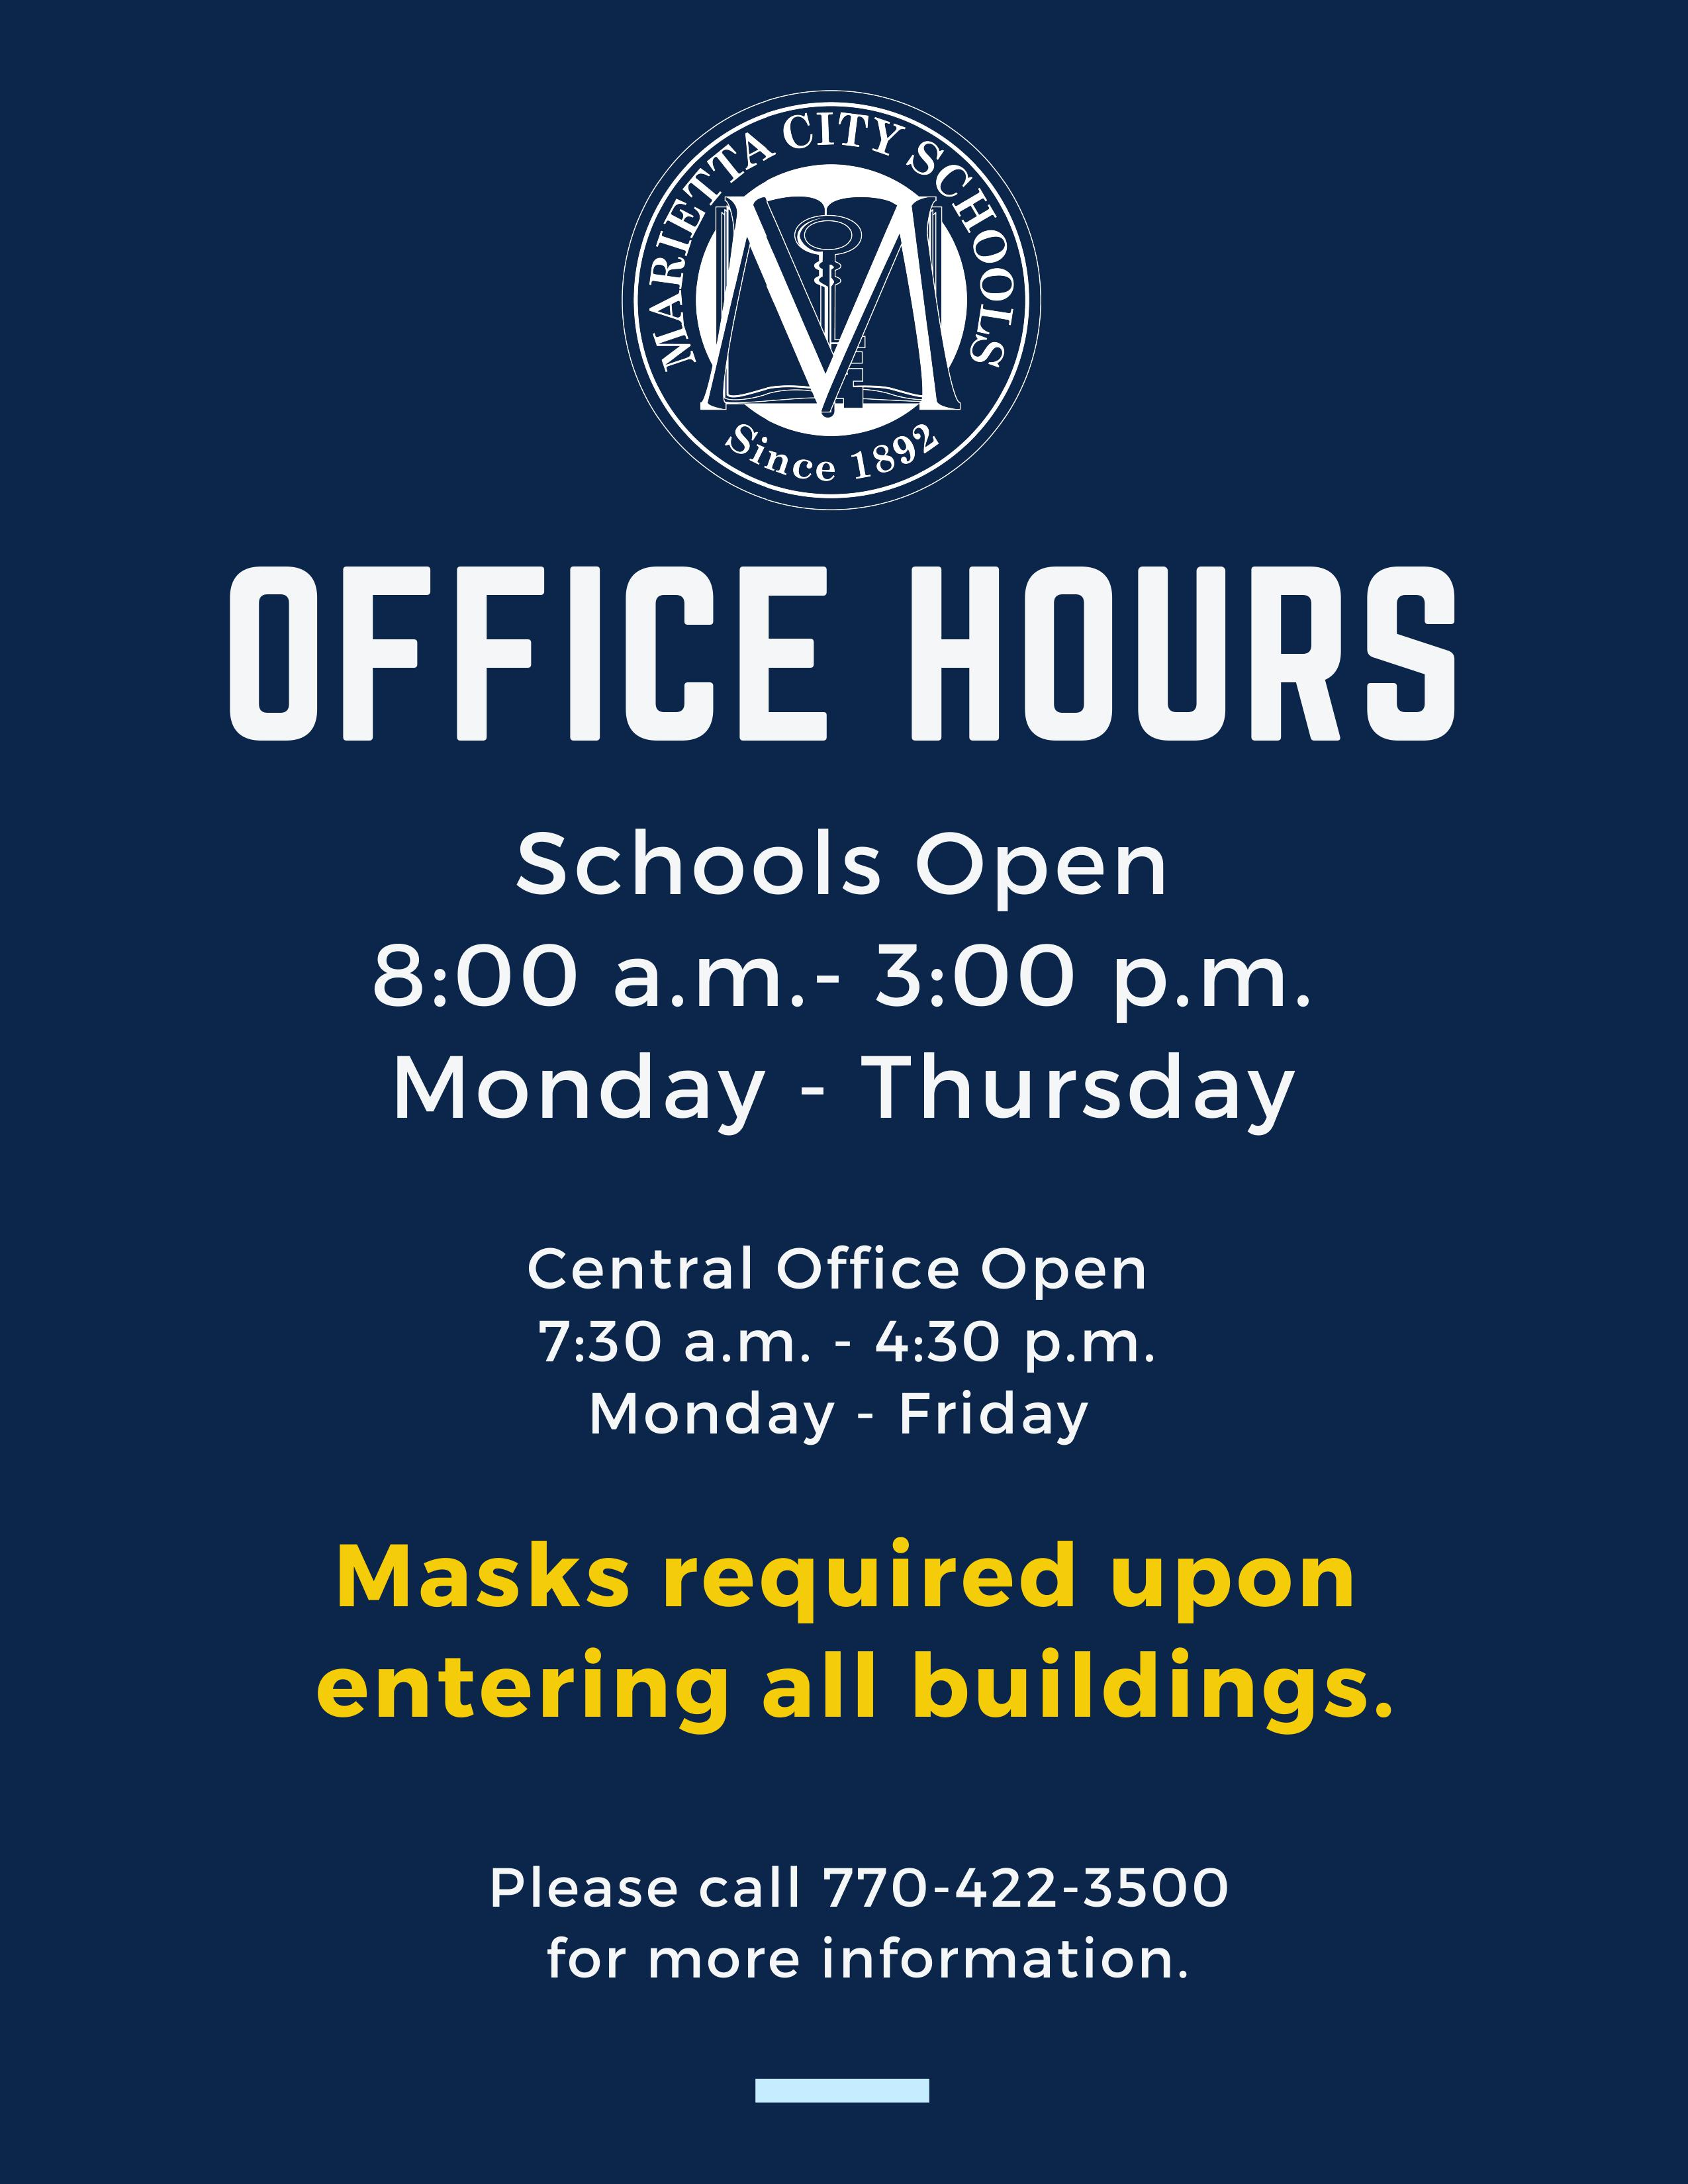 Text showing office hours of schools